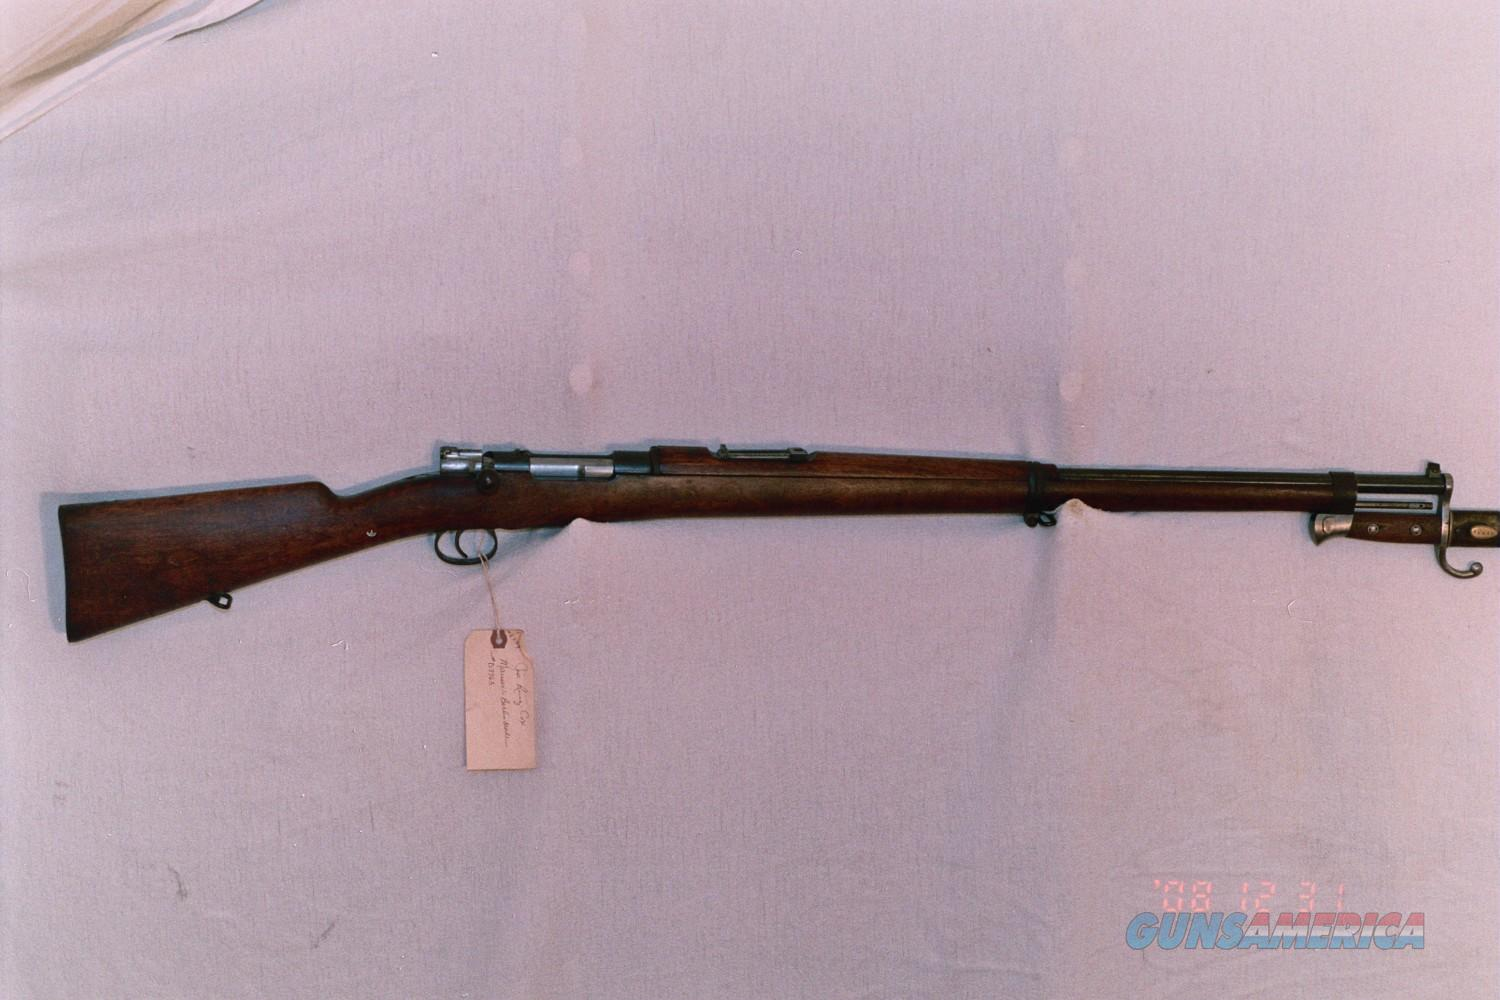 Spanish mauser 1893 made in Germany  Guns > Rifles > Mauser Rifles > Spanish